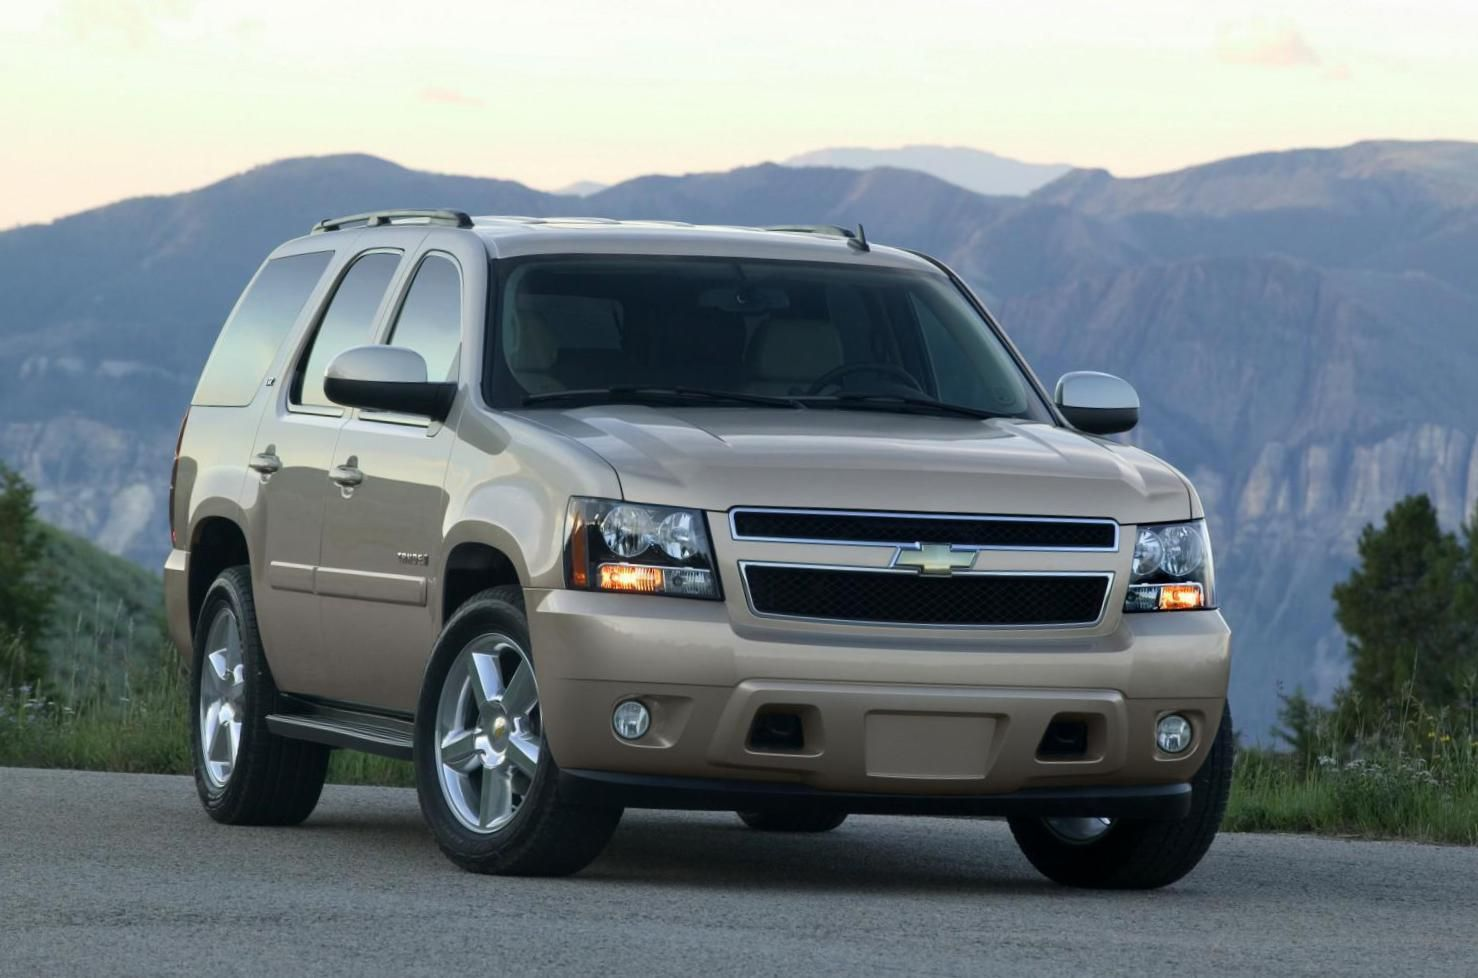 Chevrolet tahoe photos and specs photo tahoe chevrolet characteristics and 23 perfect photos of chevrolet tahoe